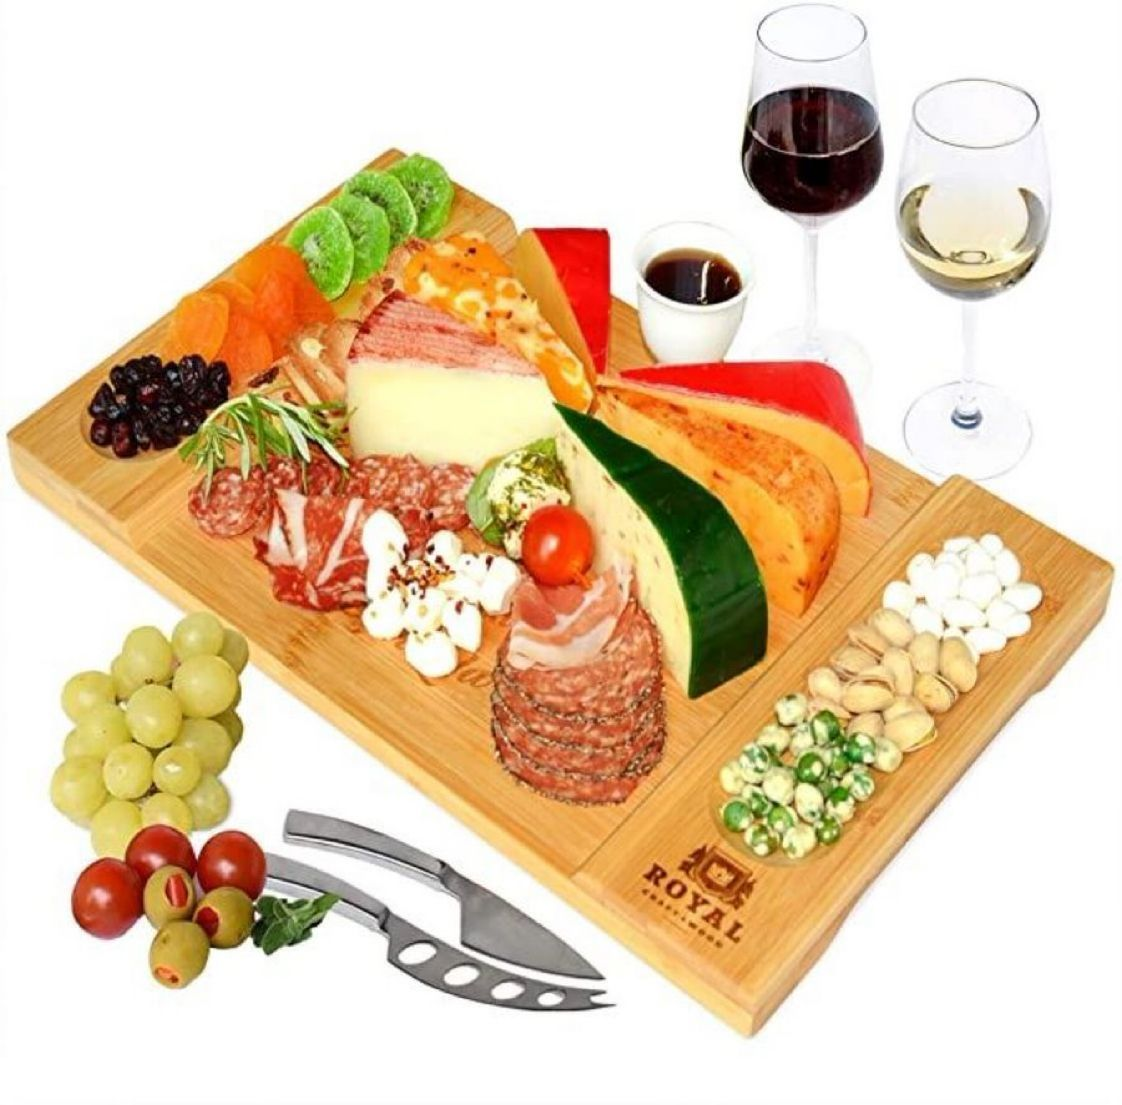 ad: 15% off  Cheese Charcuterie Board    Link0 Link0